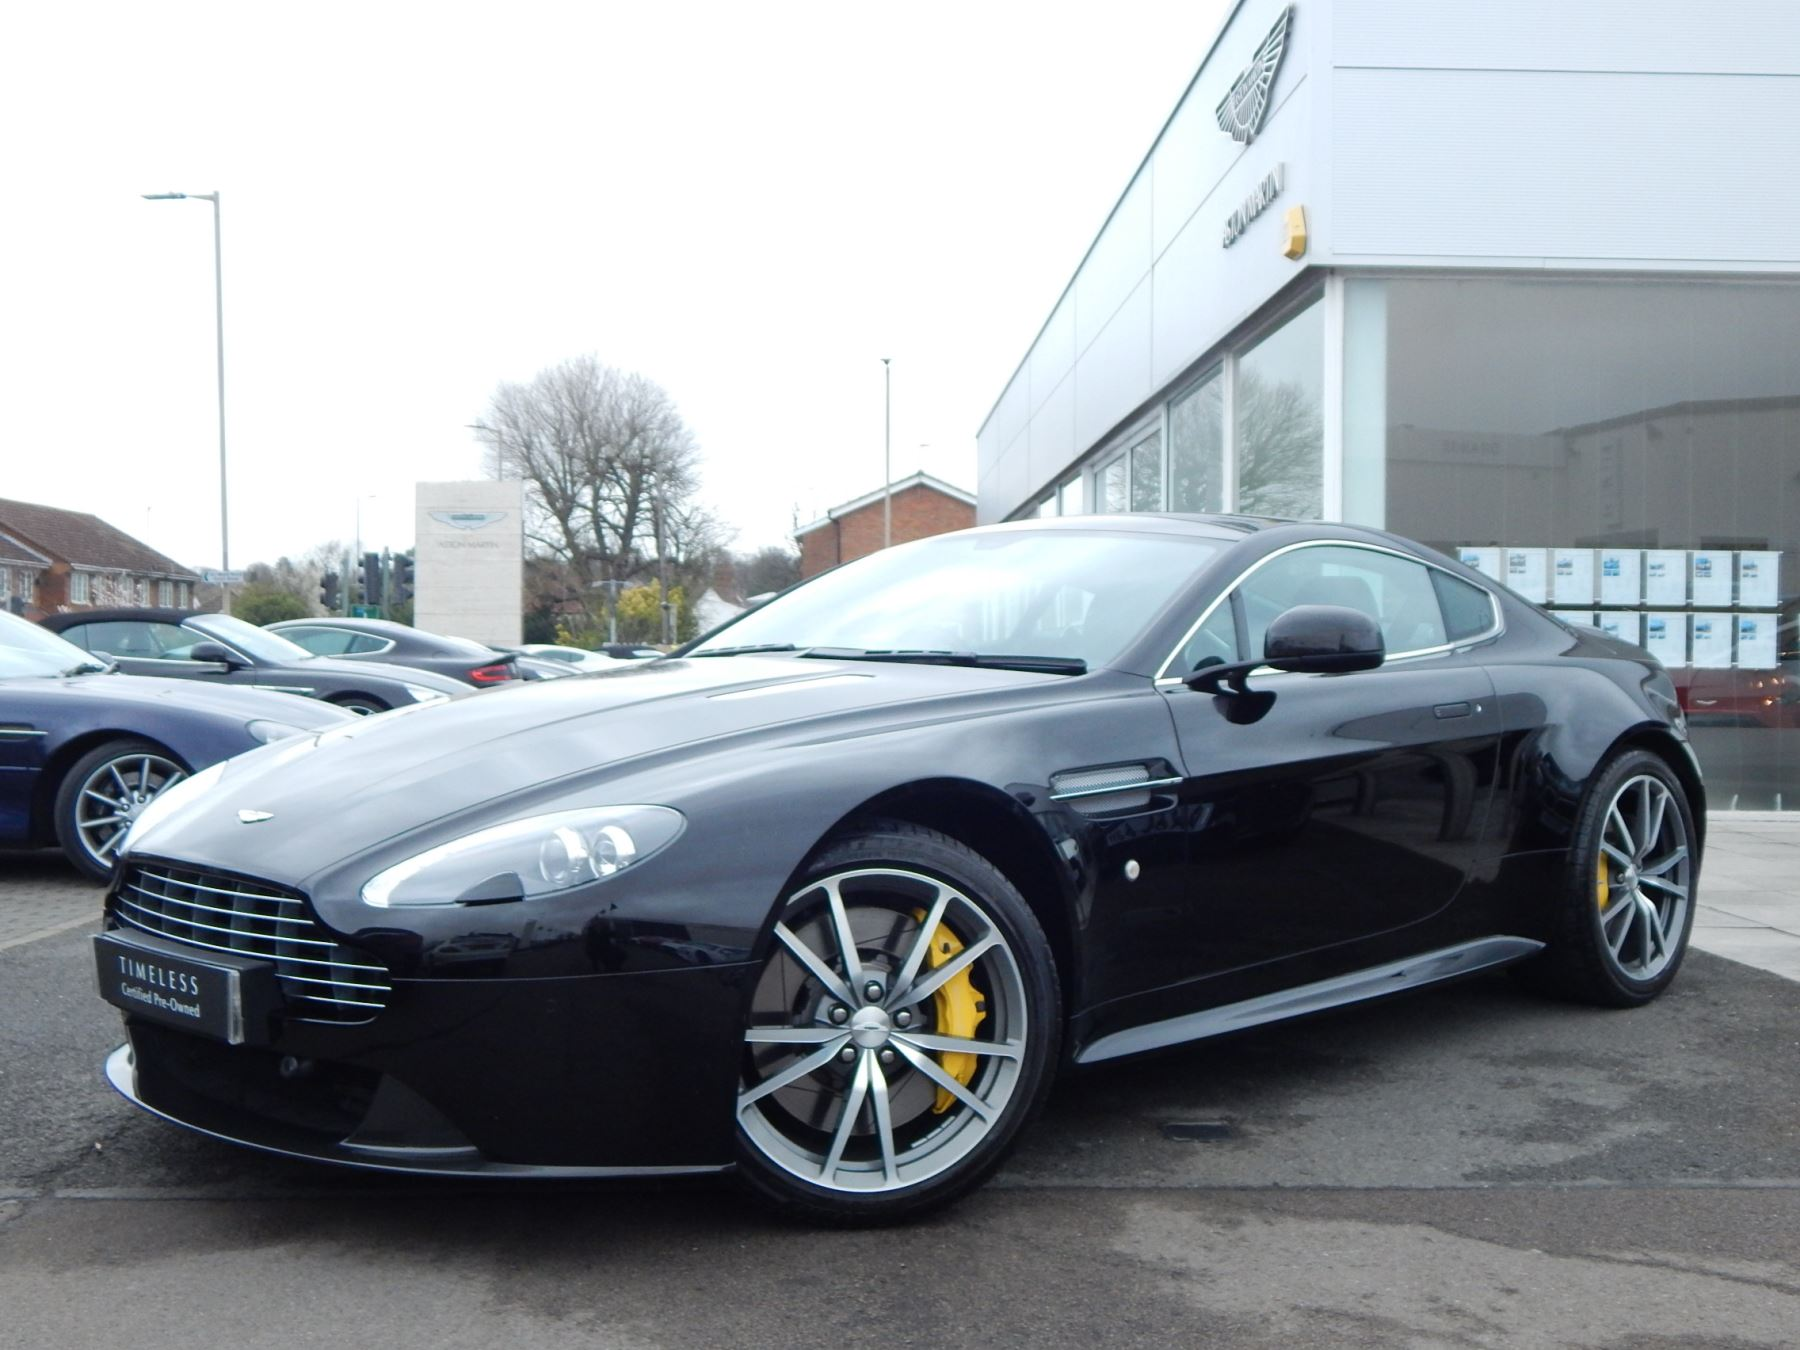 Aston Martin V8 Vantage S Coupe S 2dr Sportshift 4.7 Automatic 3 door Coupe (2016.5) image